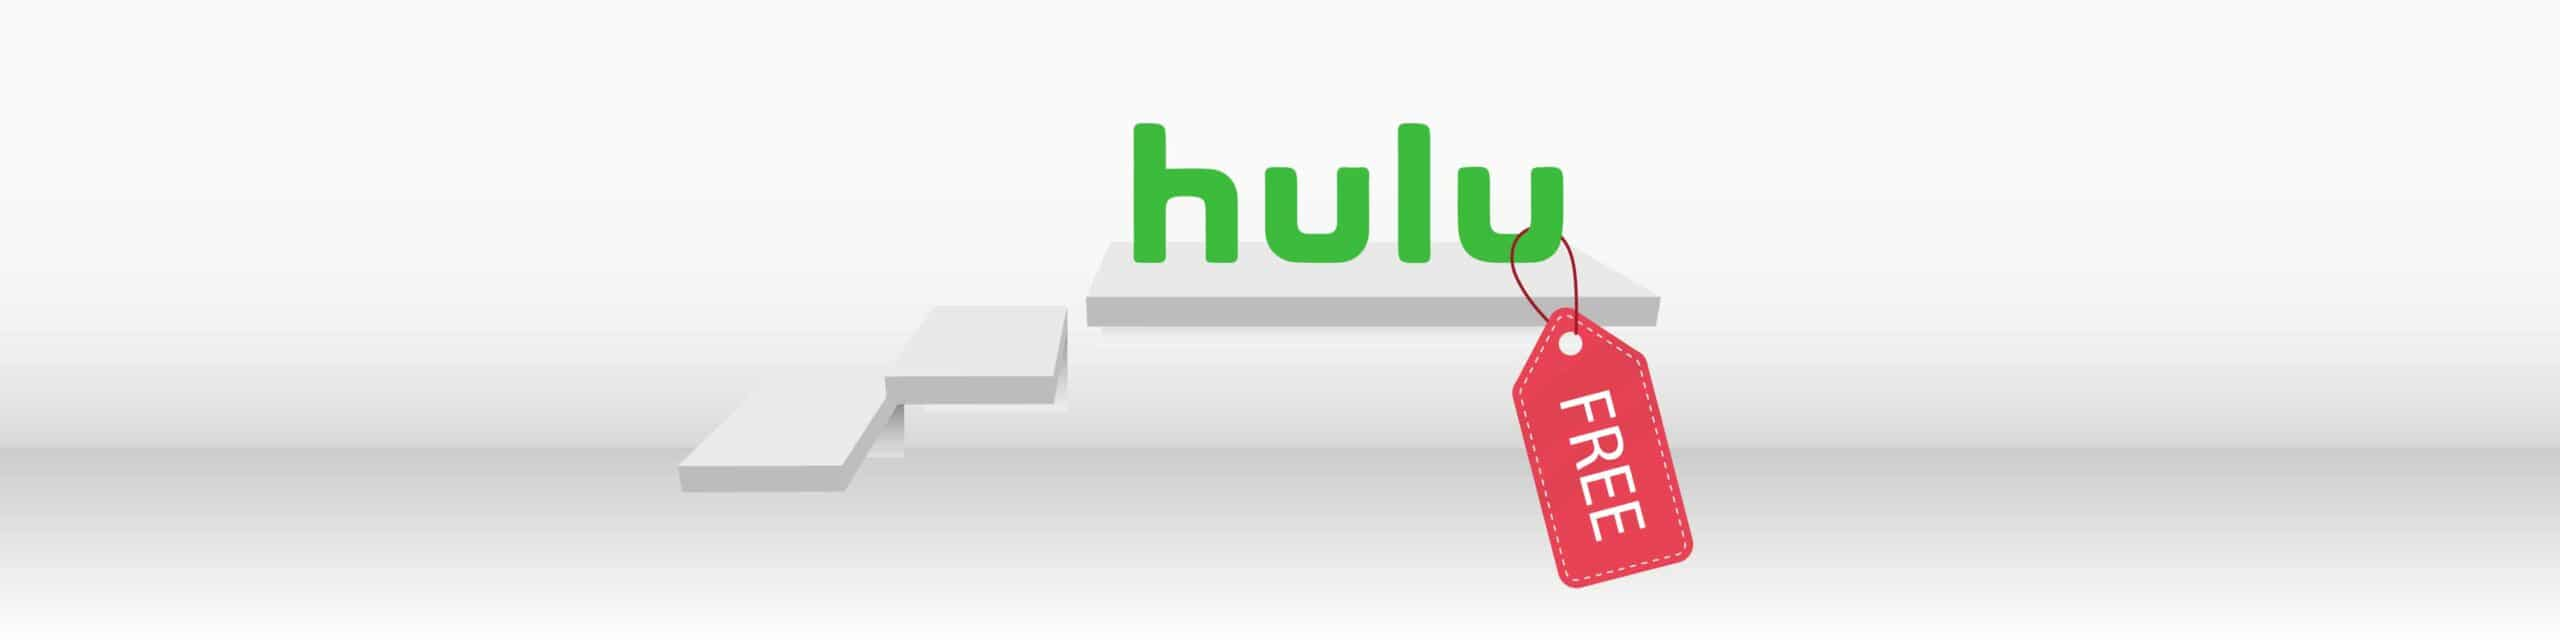 hulu for free with two tricks